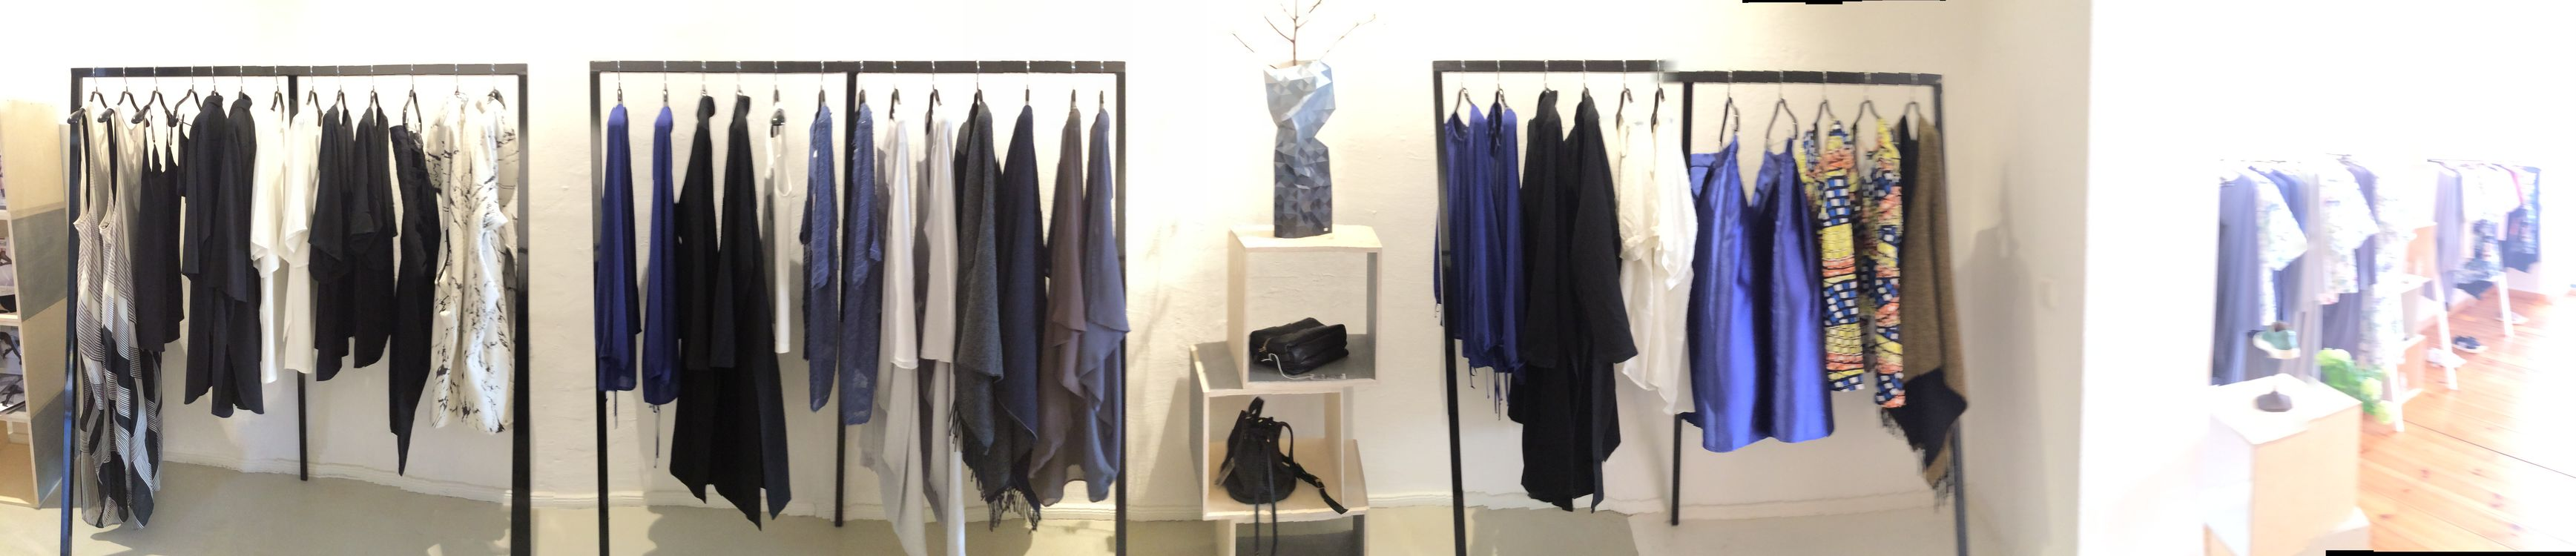 Les Soeurs Shop - The Curvy Concept Store in Berlin (Bild 7)